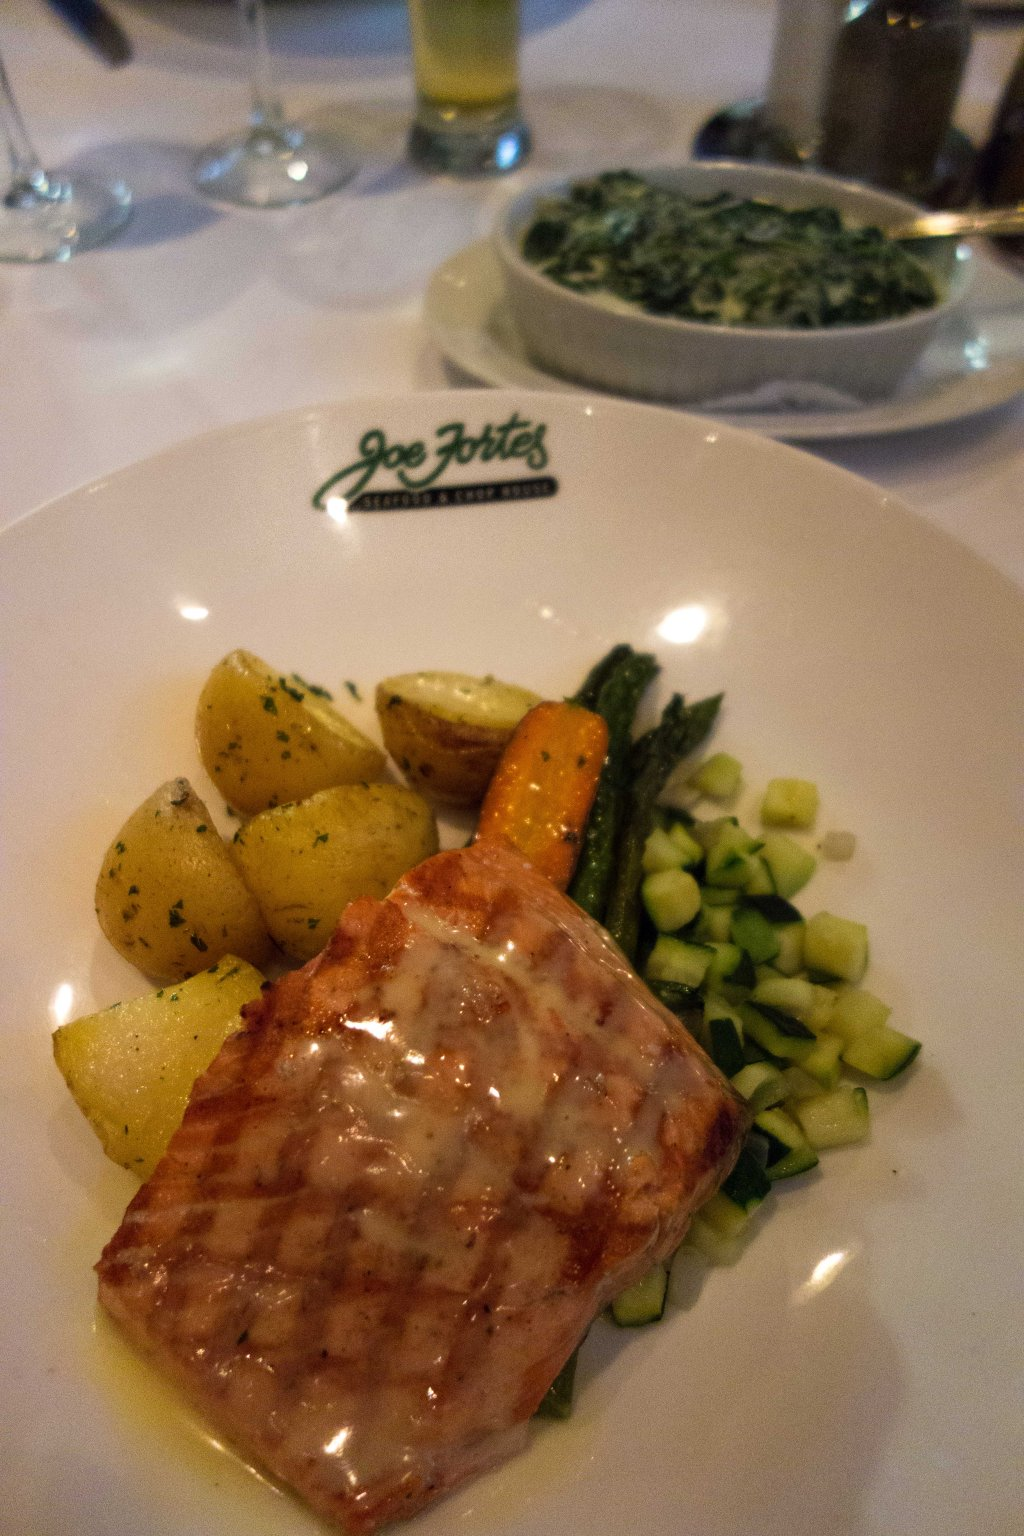 Sockeye salmon, with potatoes and veggies.  Creamed spinach in the background.